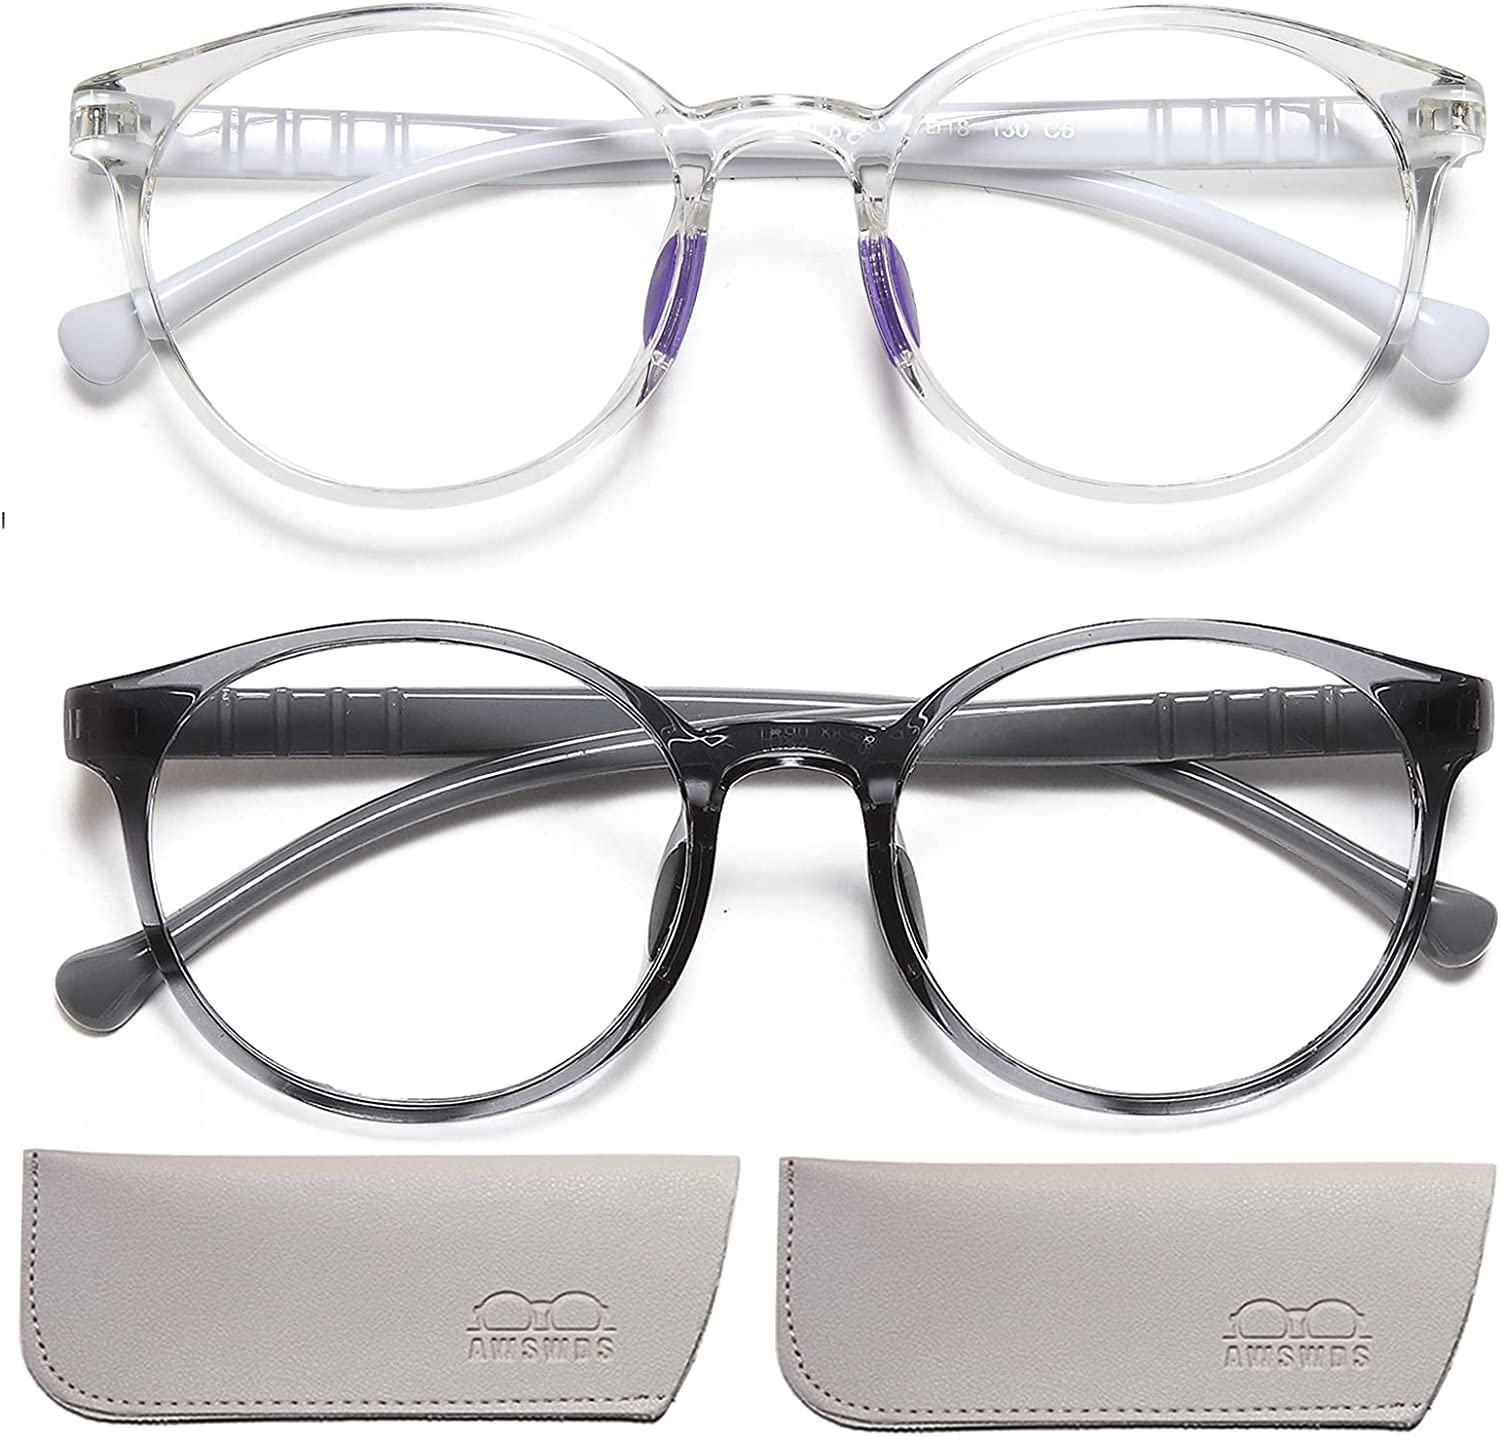 Blue Light Glasses for Ranking integrated 1st place Kids Girls age 4-14 Max 72% OFF Lightweig Boys .Round